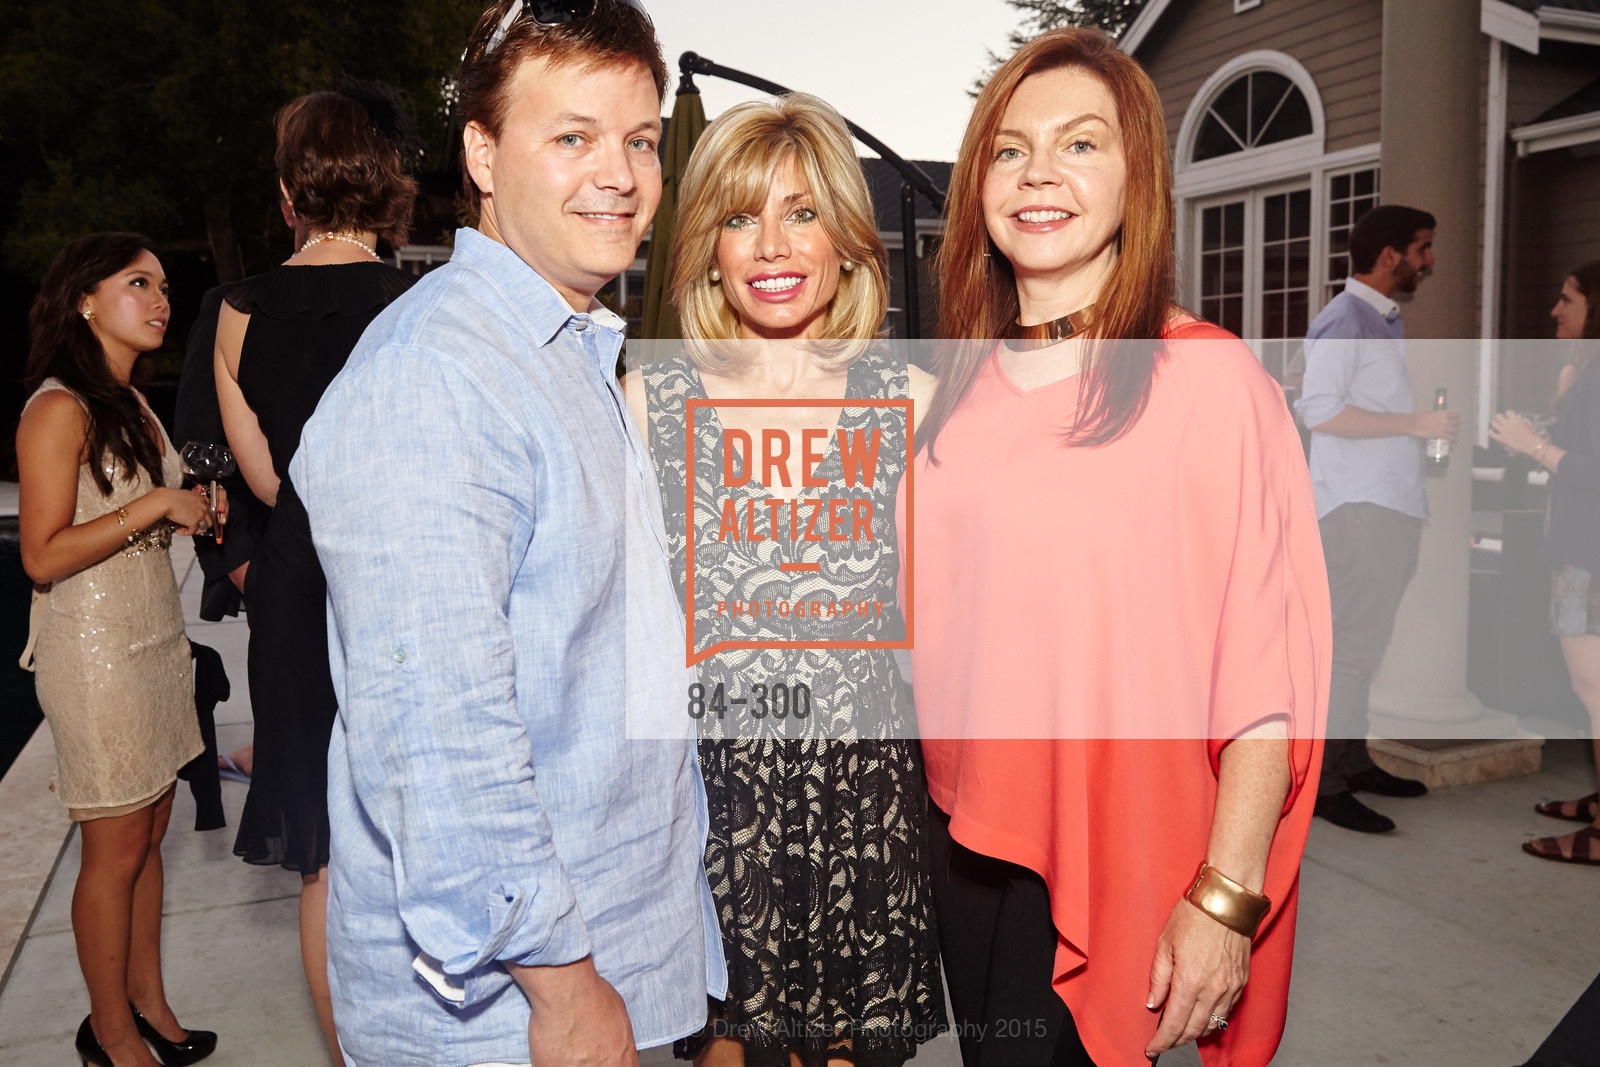 Top Picks, Breast Cancer Awareness Fund Presents This Old Bag Silicon Valley Preview Party, September 19th, 2015, Photo,Drew Altizer, Drew Altizer Photography, full-service event agency, private events, San Francisco photographer, photographer California